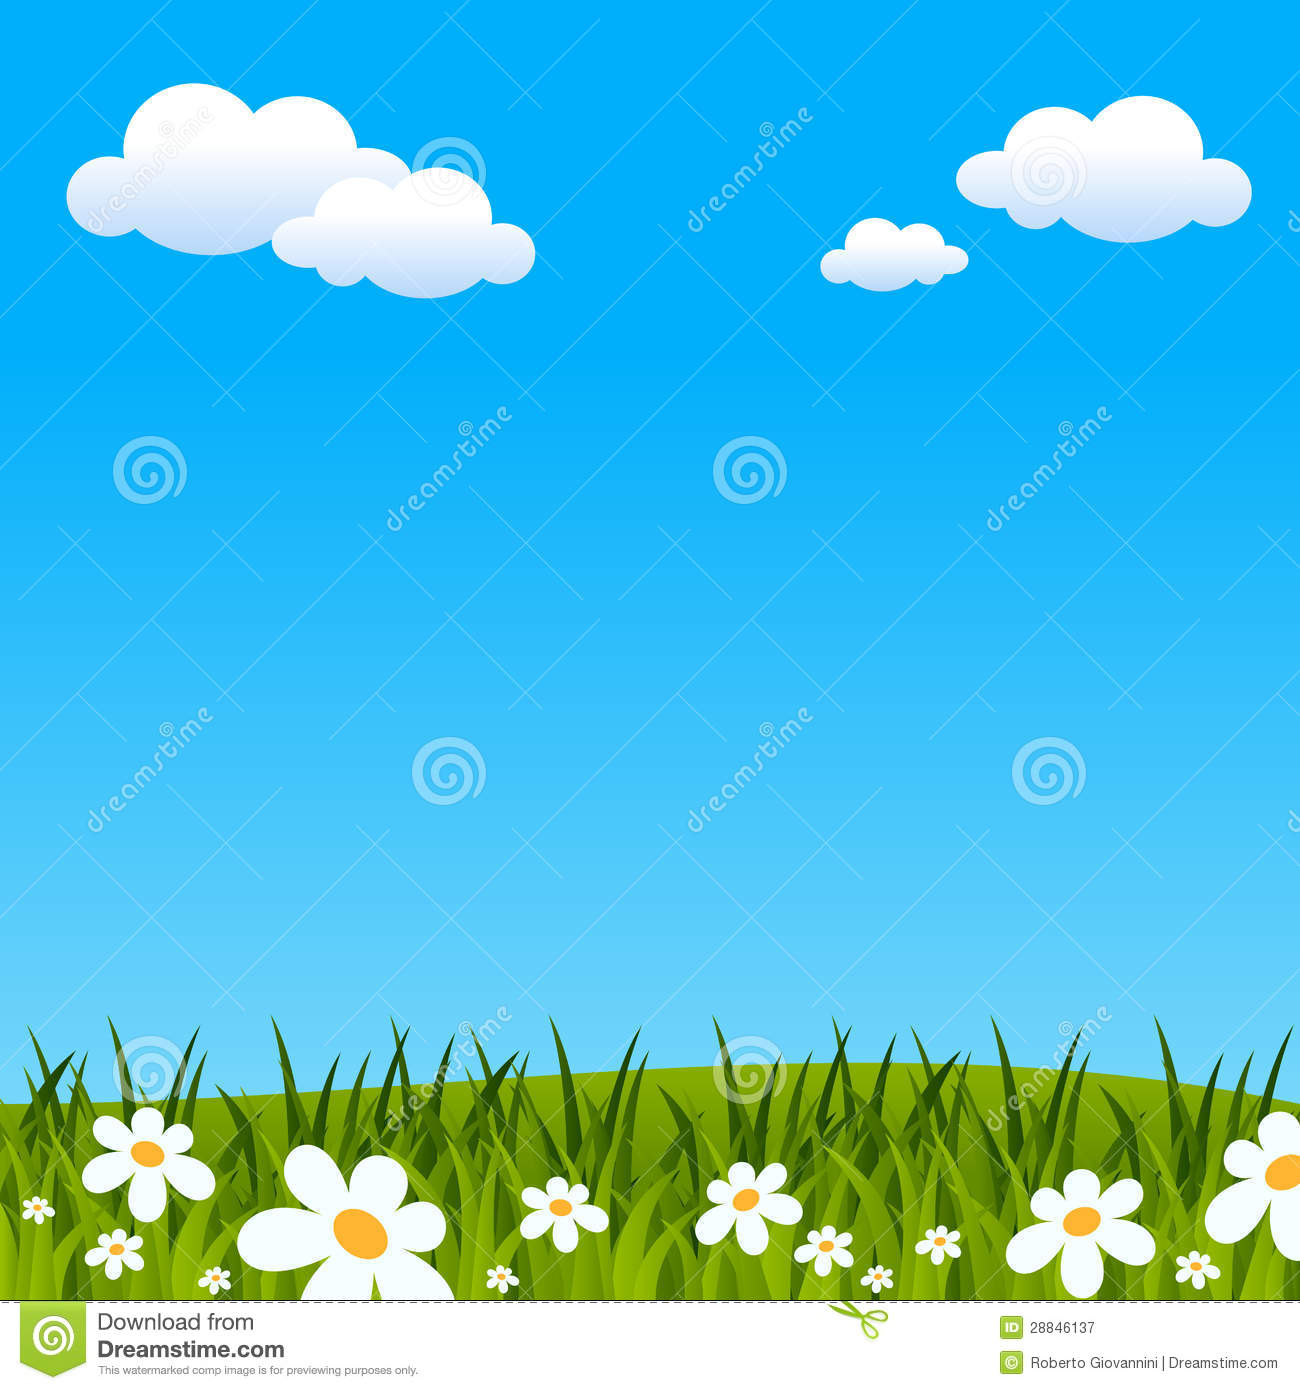 Free spring background clipart image freeuse 24+ Free Clipart Backgrounds | ClipartLook image freeuse